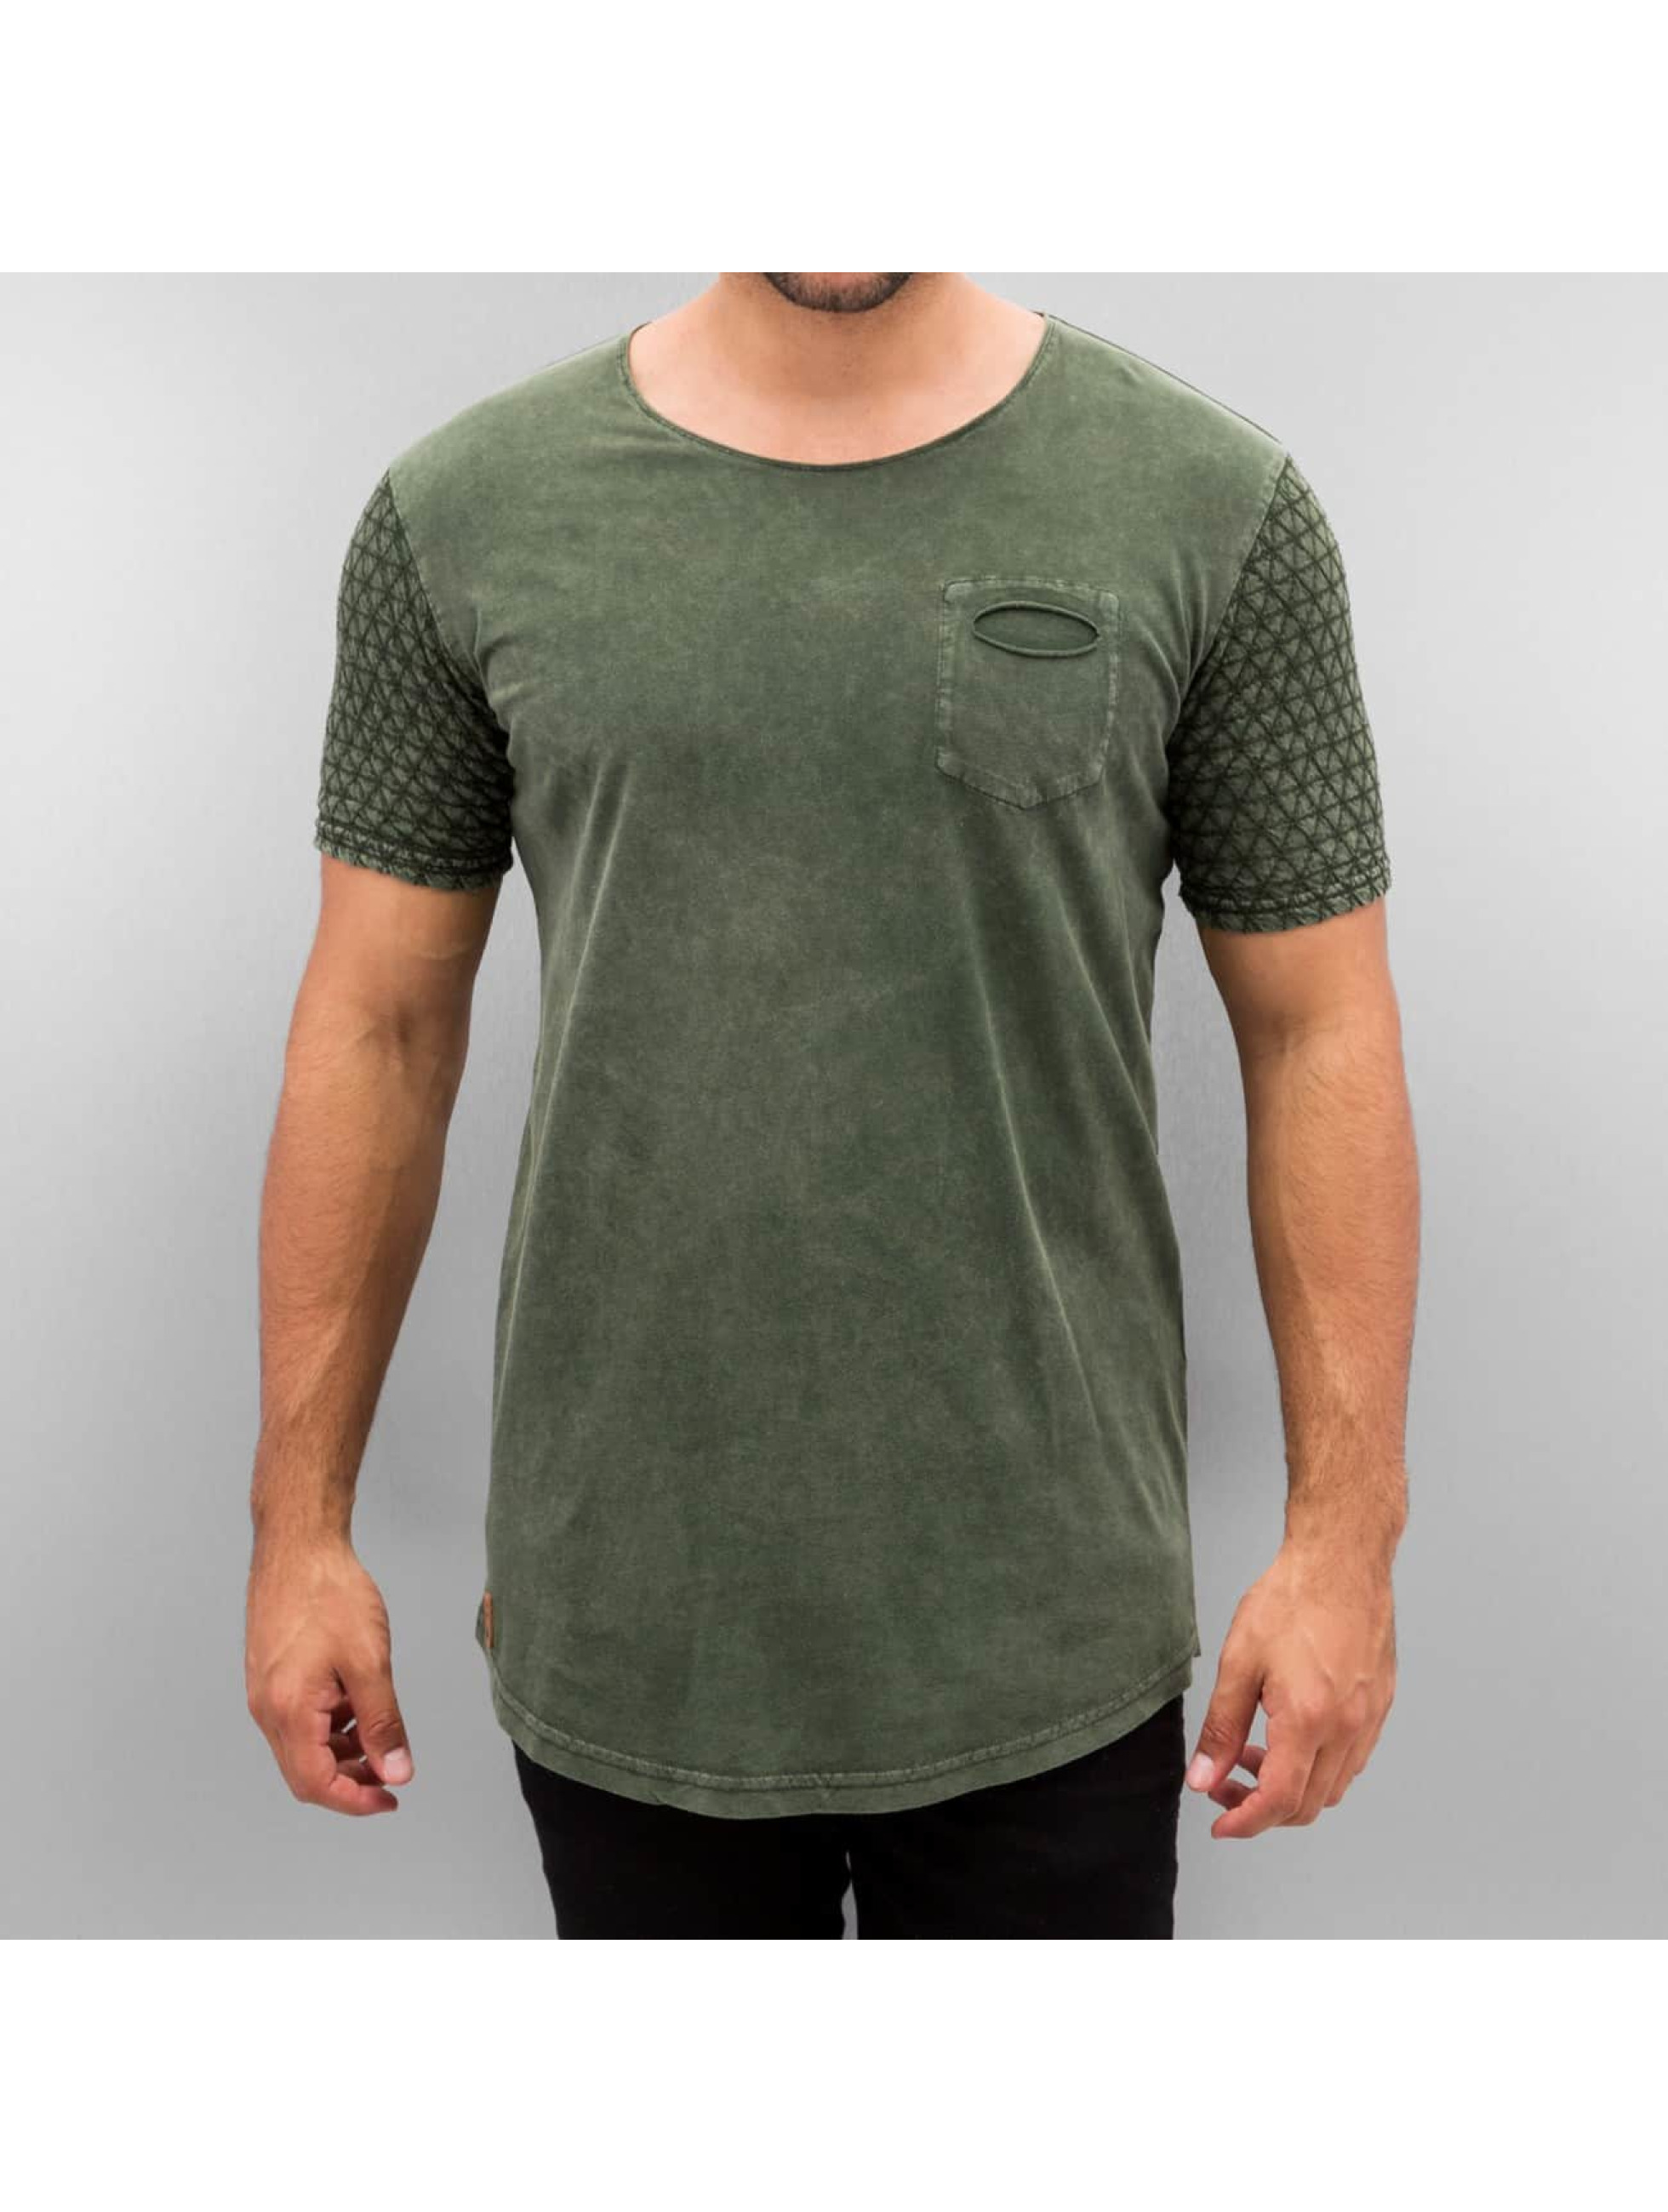 Red Bridge Tall Tees Ribo khaki